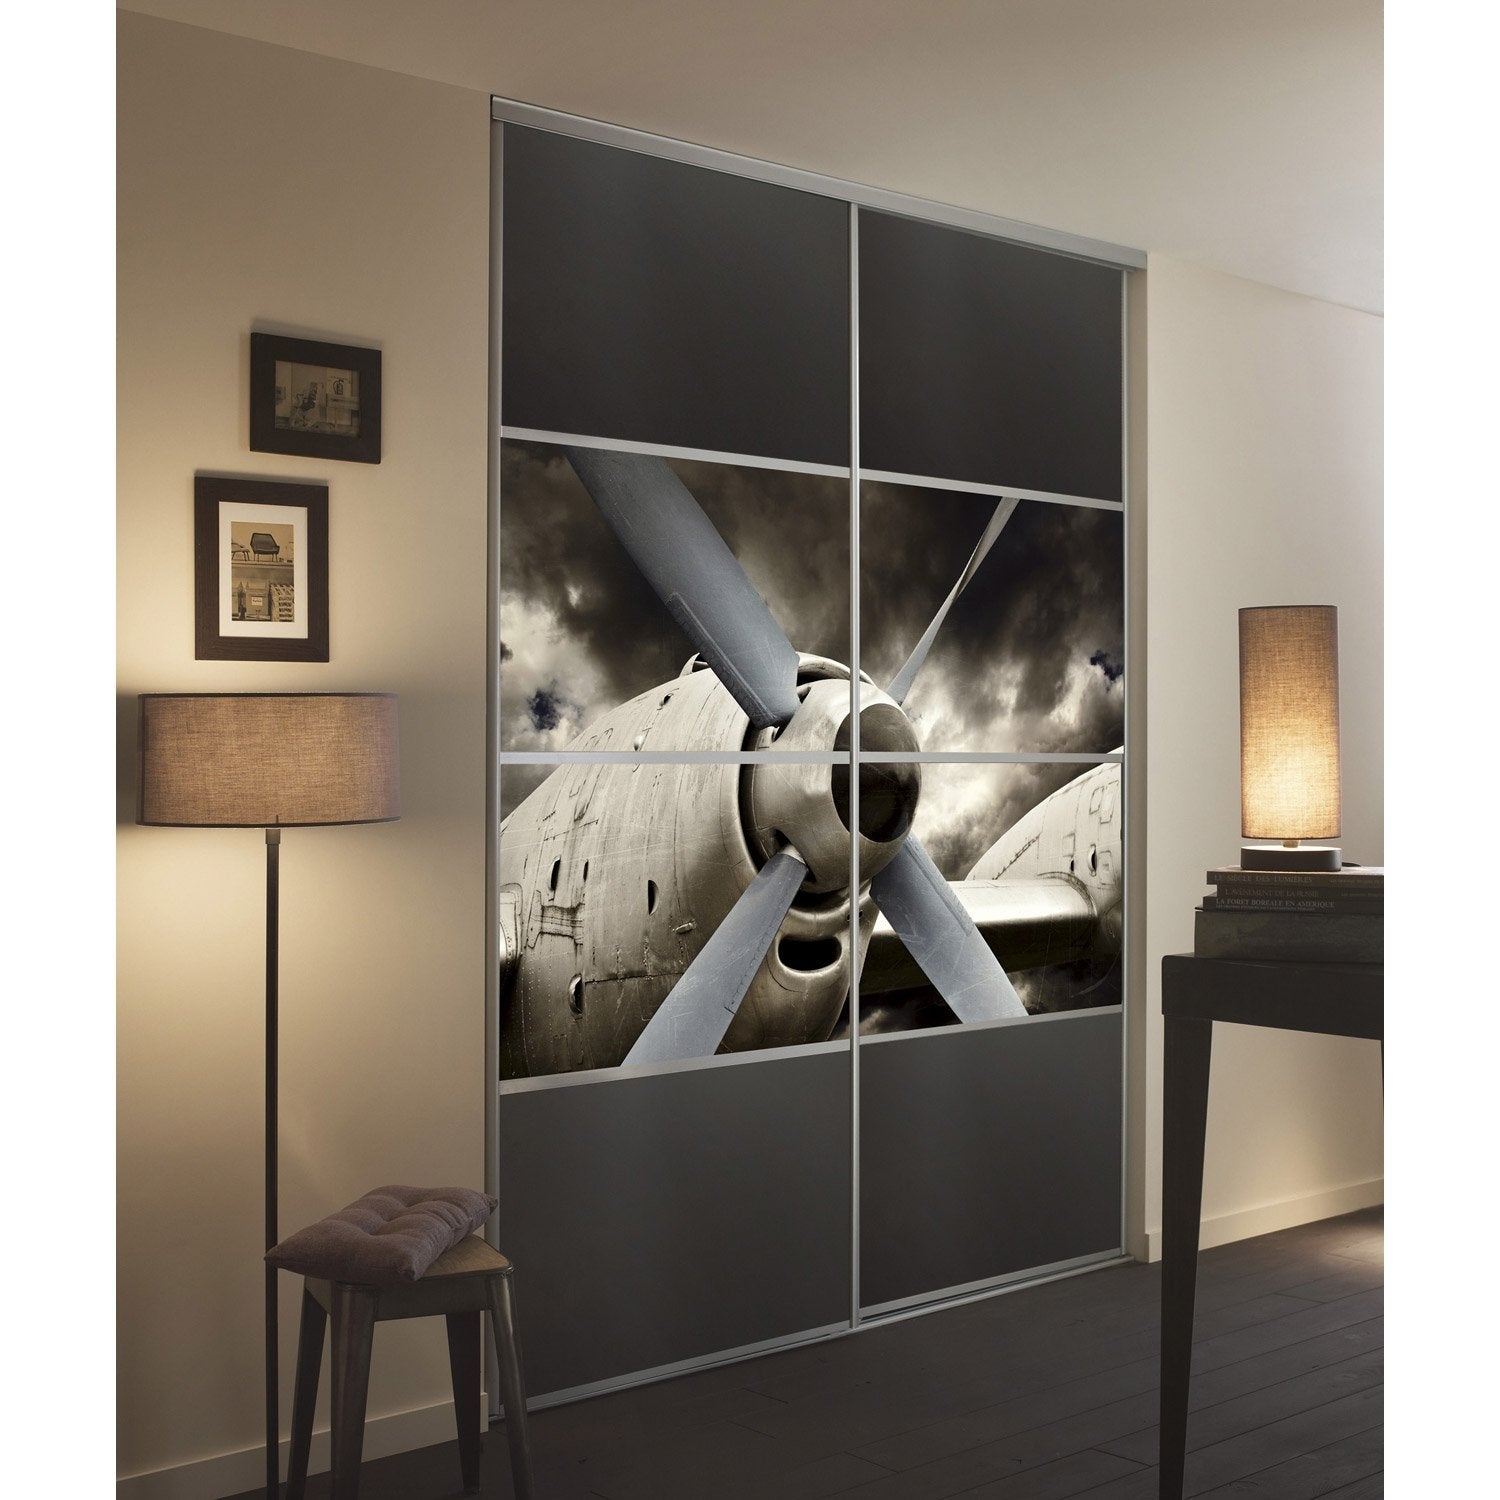 kit 4 stick 39 it pour porte de placard coulissante cm avion leroy merlin. Black Bedroom Furniture Sets. Home Design Ideas